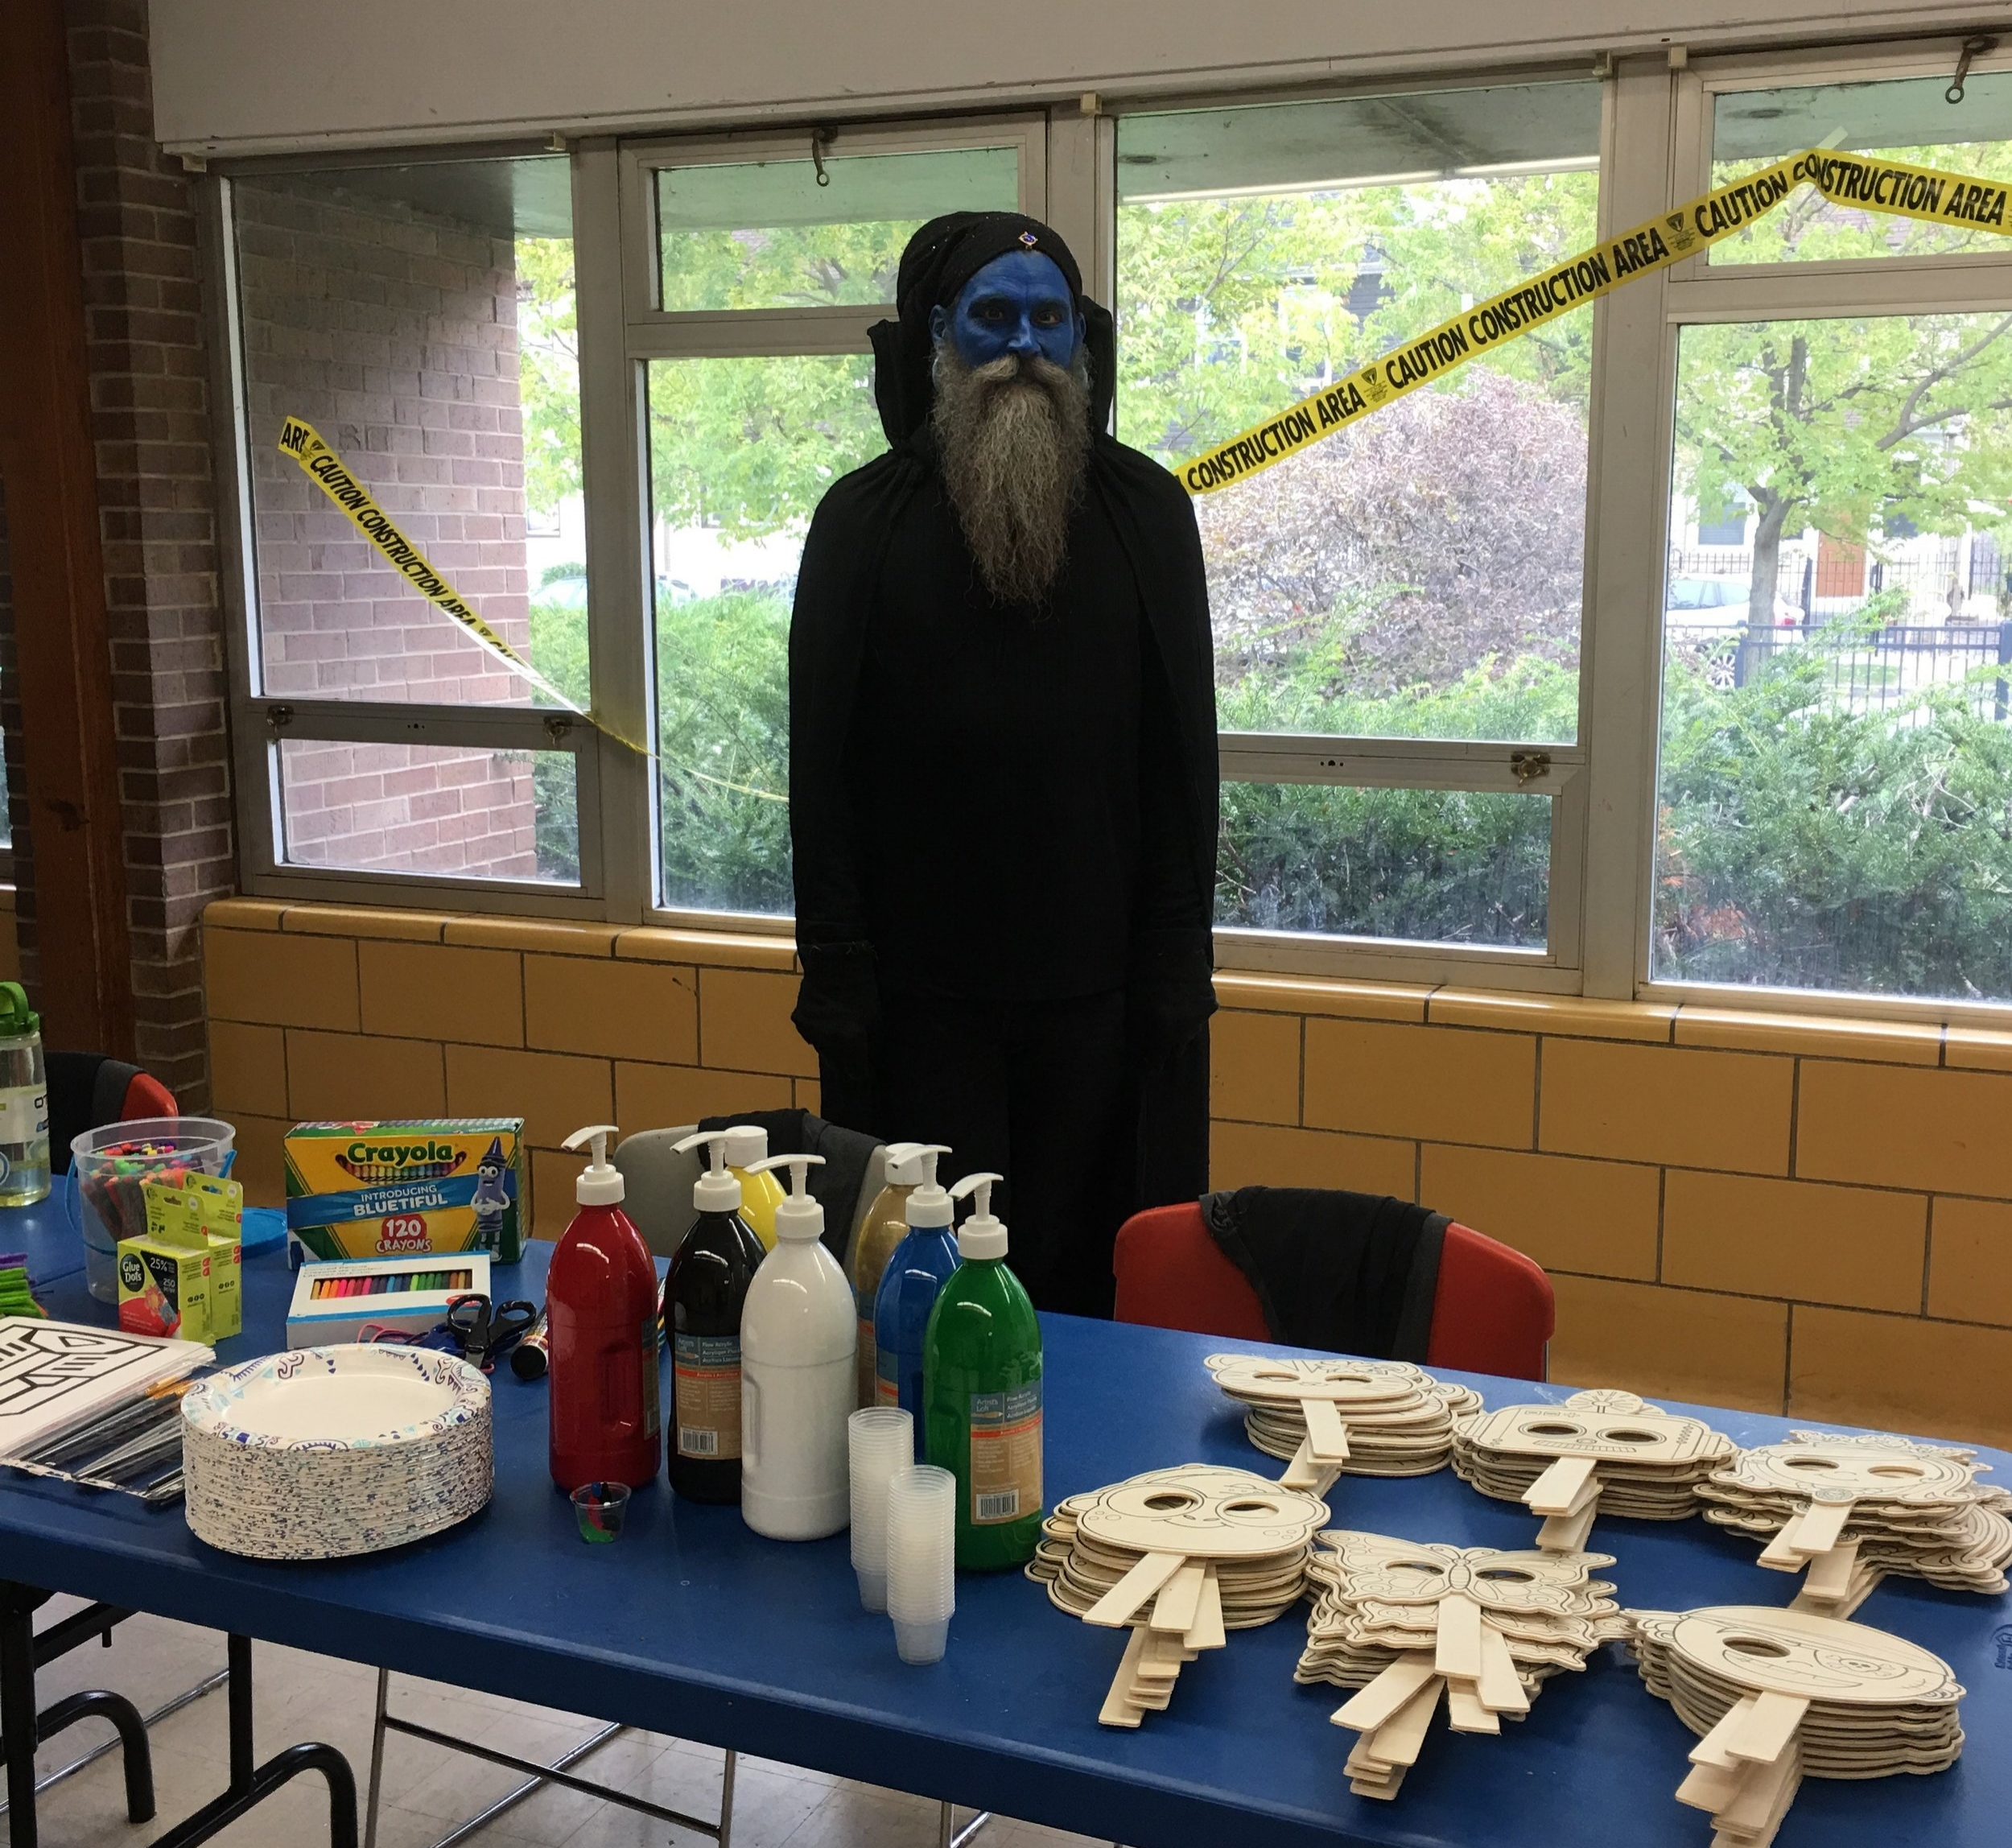 The Wizard awaits at Pottawattomie's Trunk or Treat day.